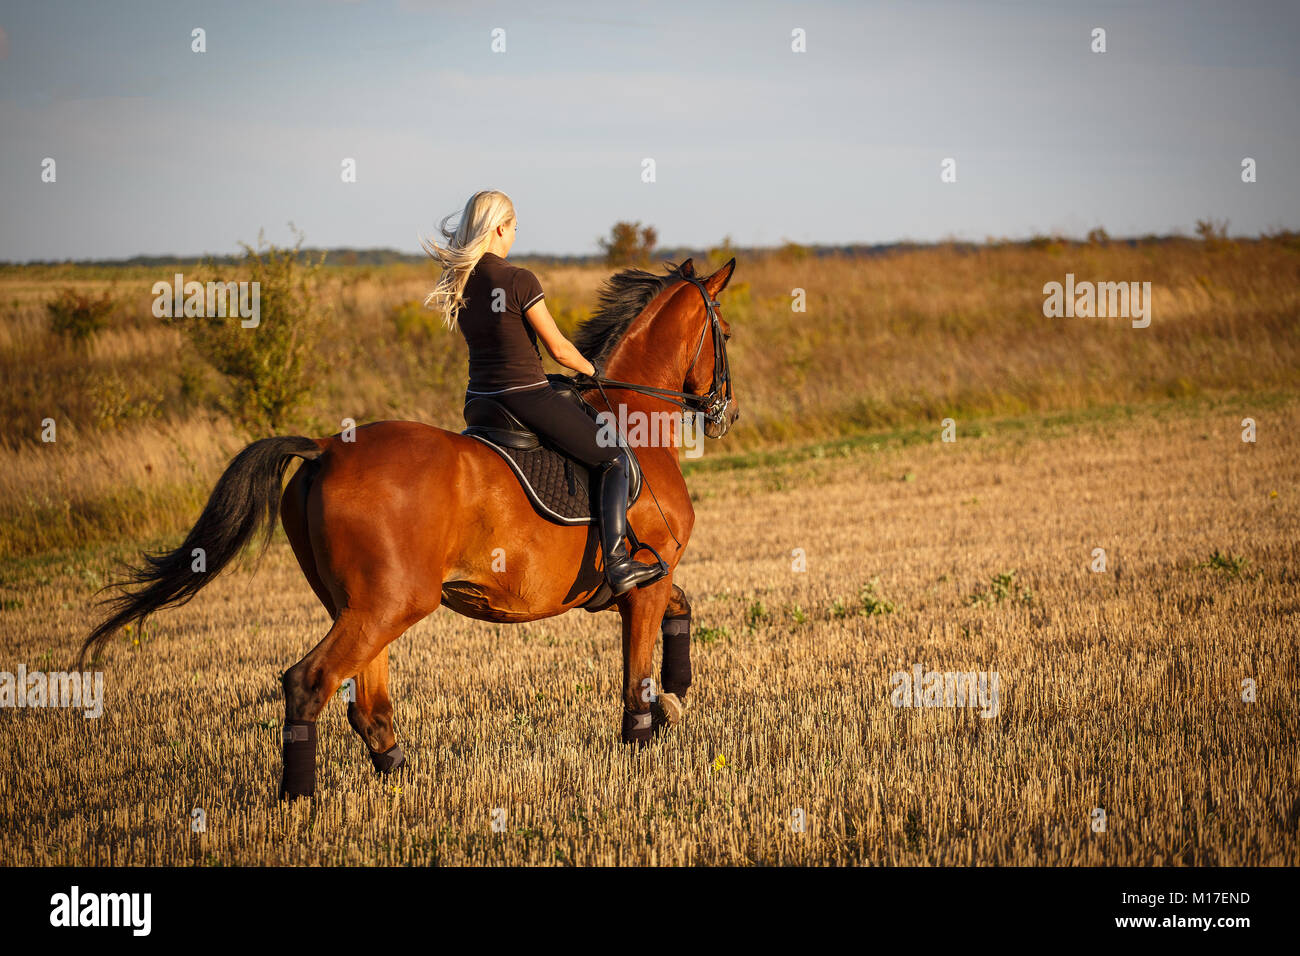 Young female rider on bay horse in field. eople and animals. Equestrian. - Stock Image